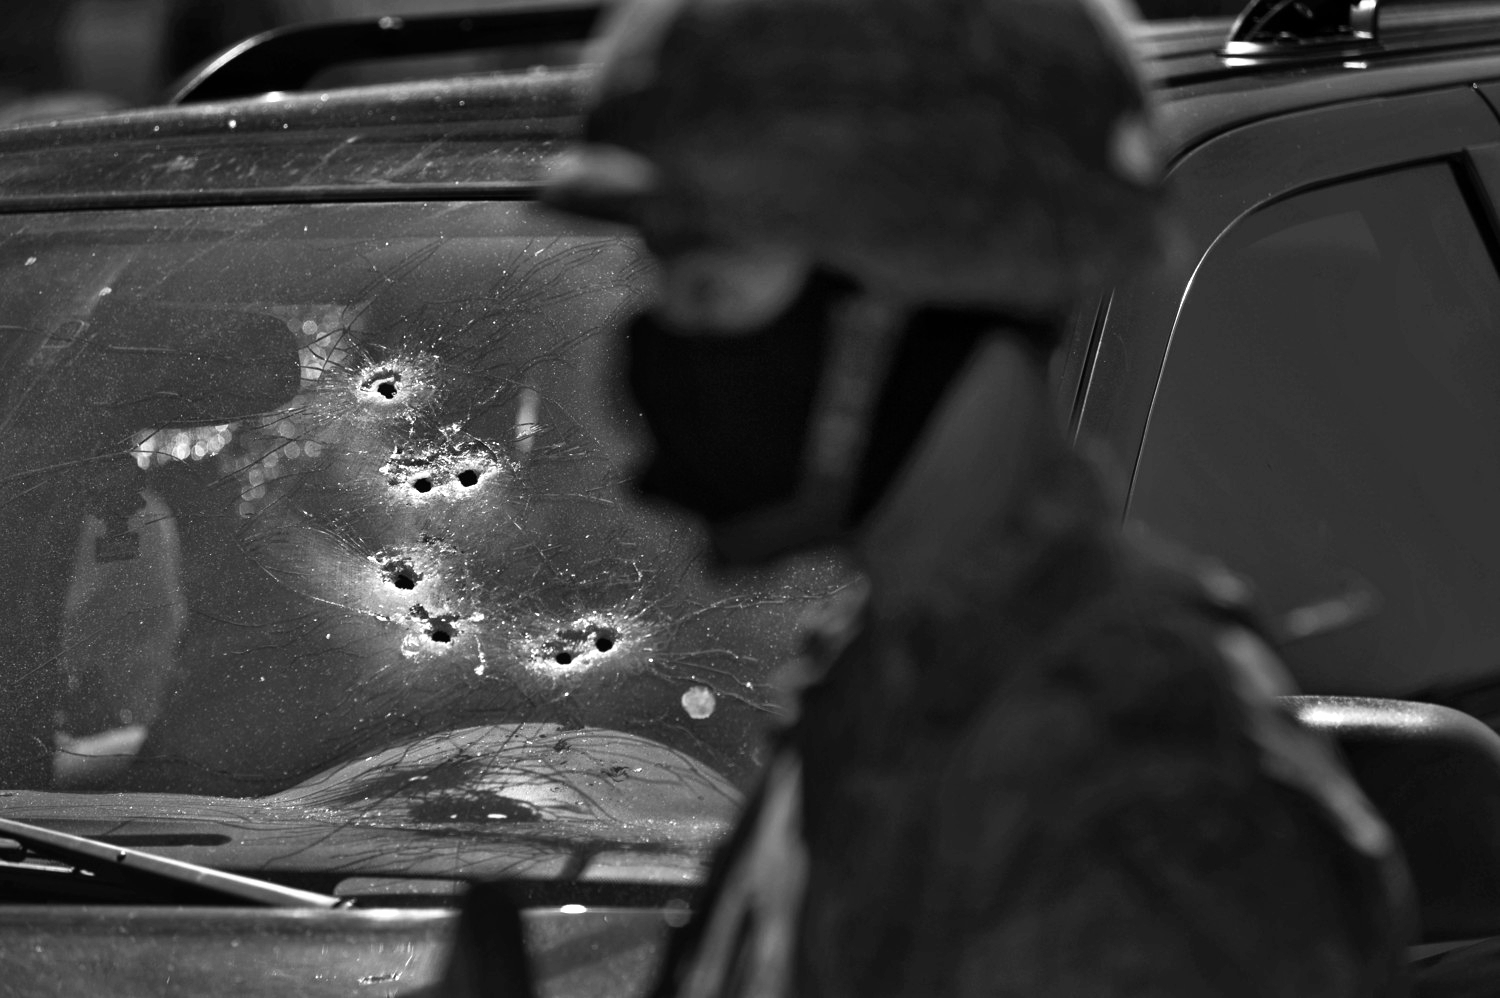 A Mexican soldier stands guard by a bullet riddled vehicle in which two men were executed by drug cartel assassins in Culiacan, Sinaloa, Mexico.March 2, 2012 ©Louie Palu/ZUMAPRESS.com